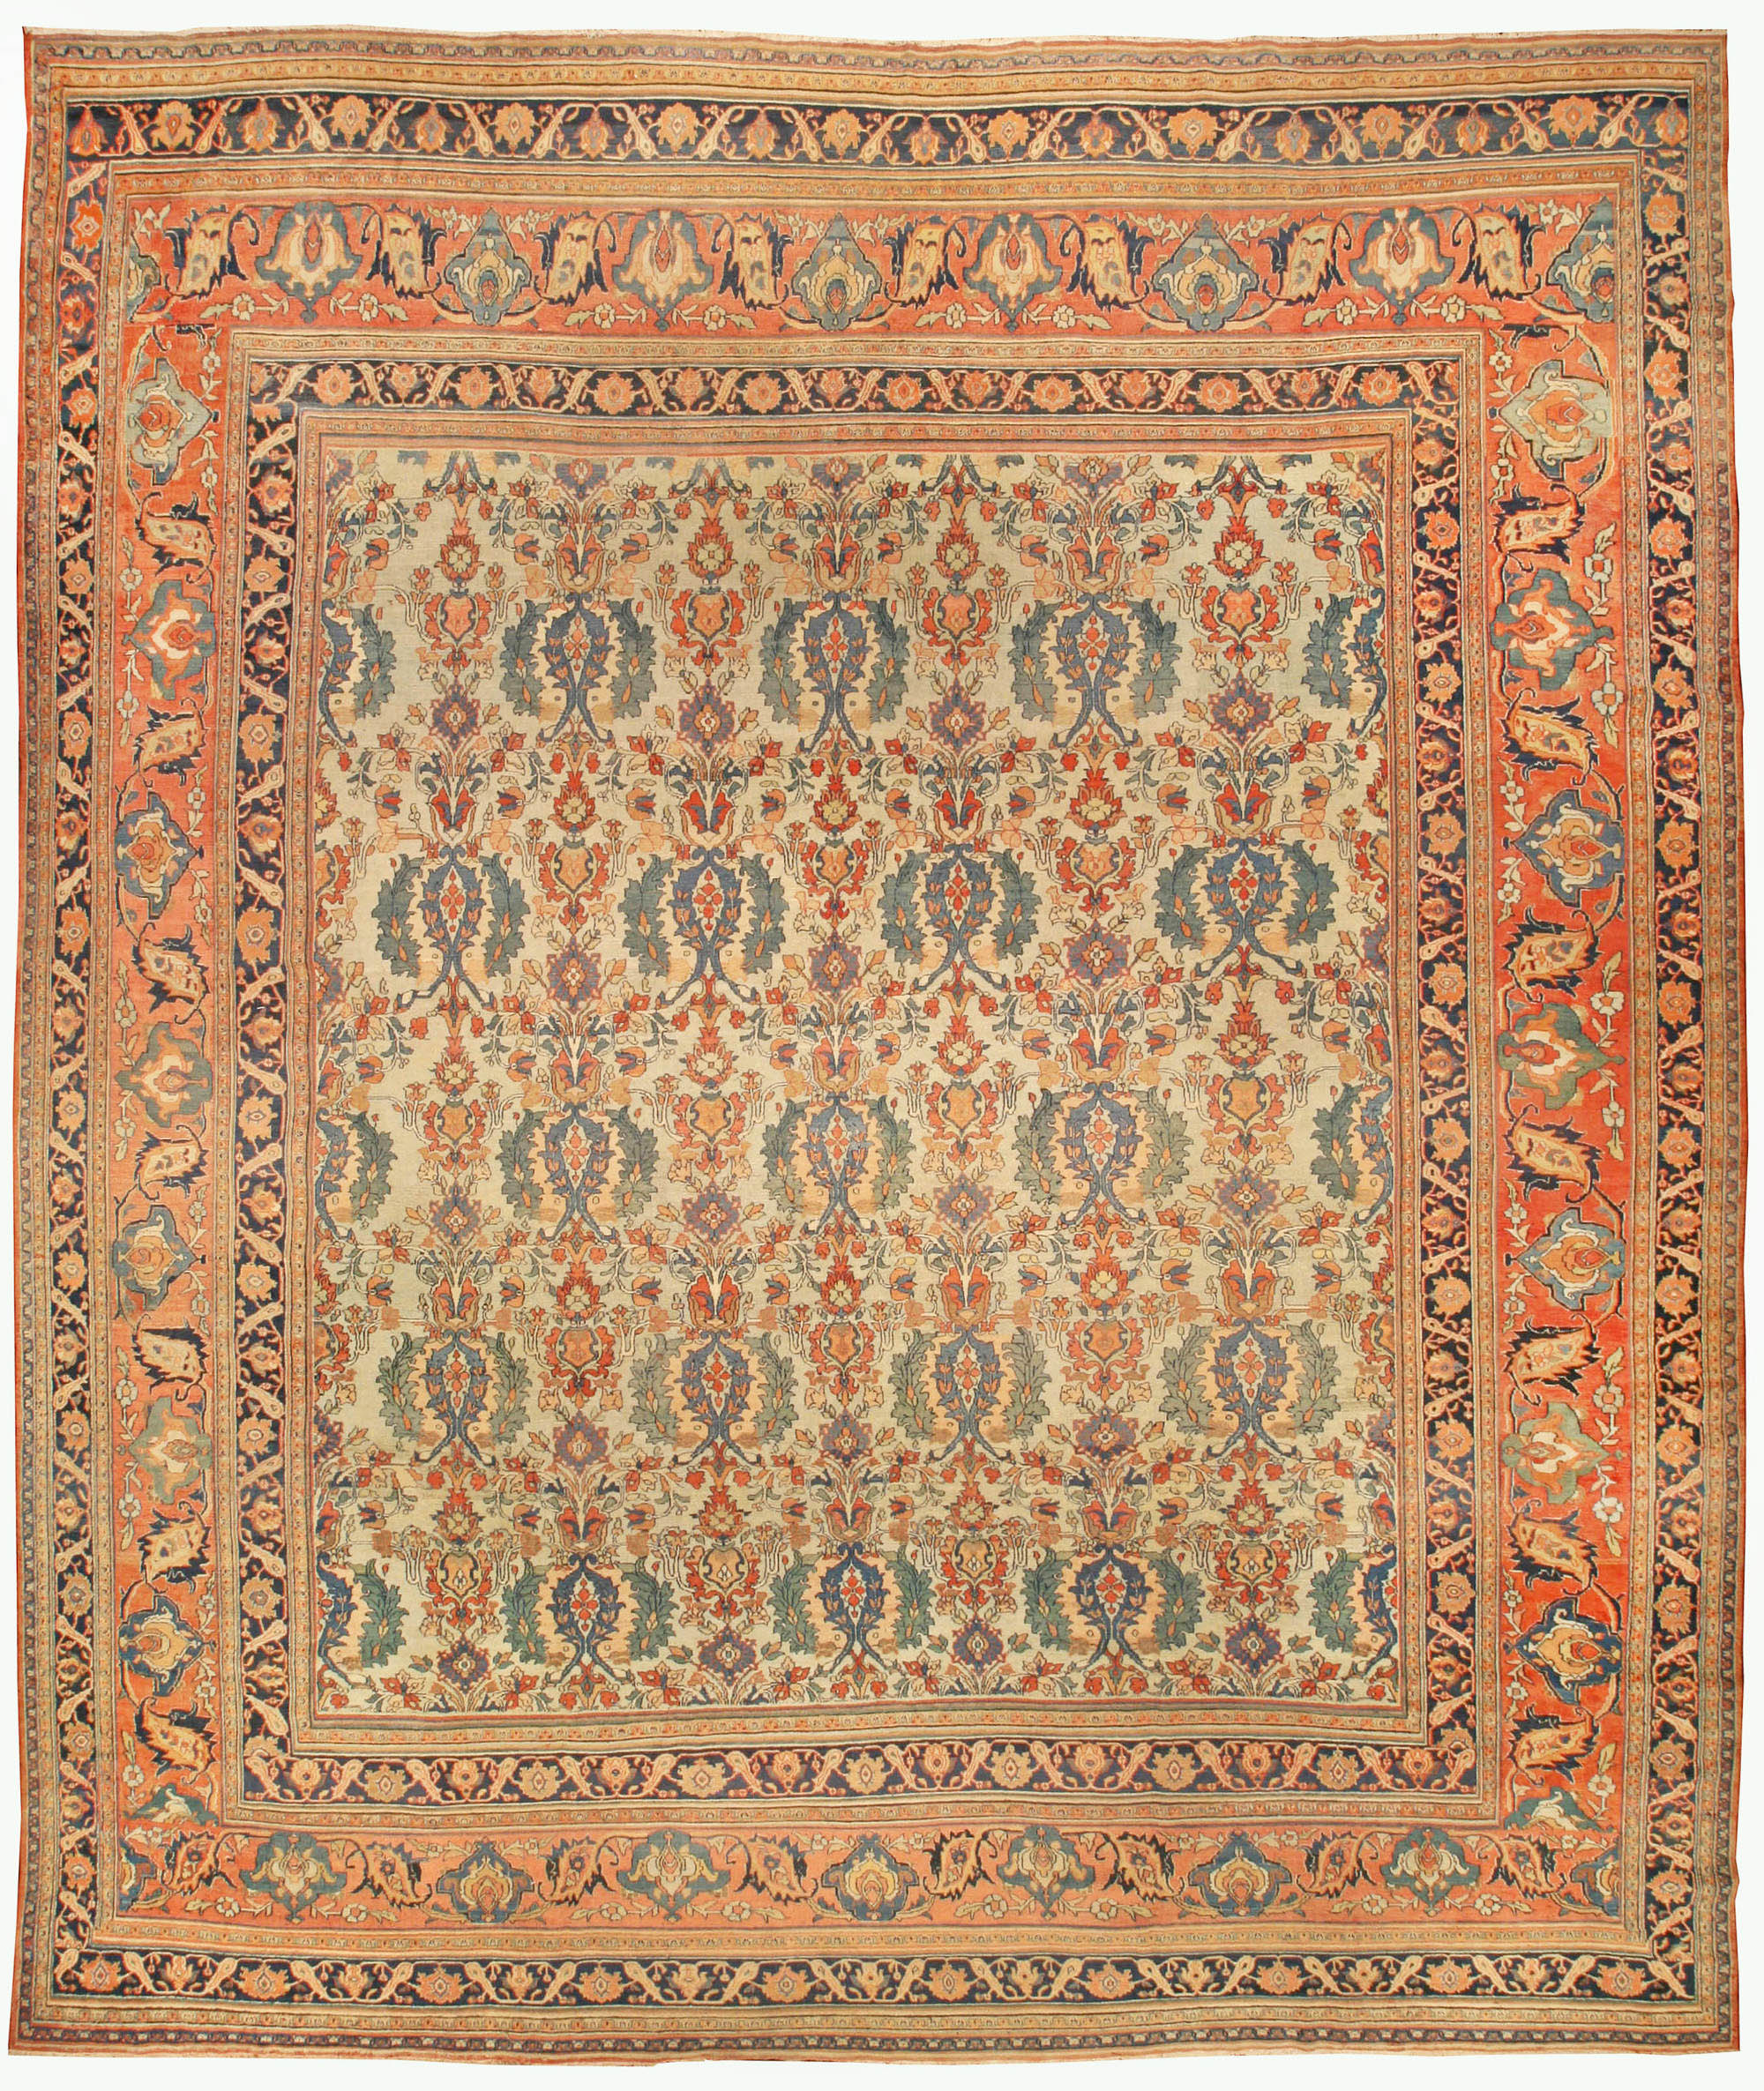 Antique Large Rug: Large Antique Persian Khorassan Rug BB4297 By Doris Leslie